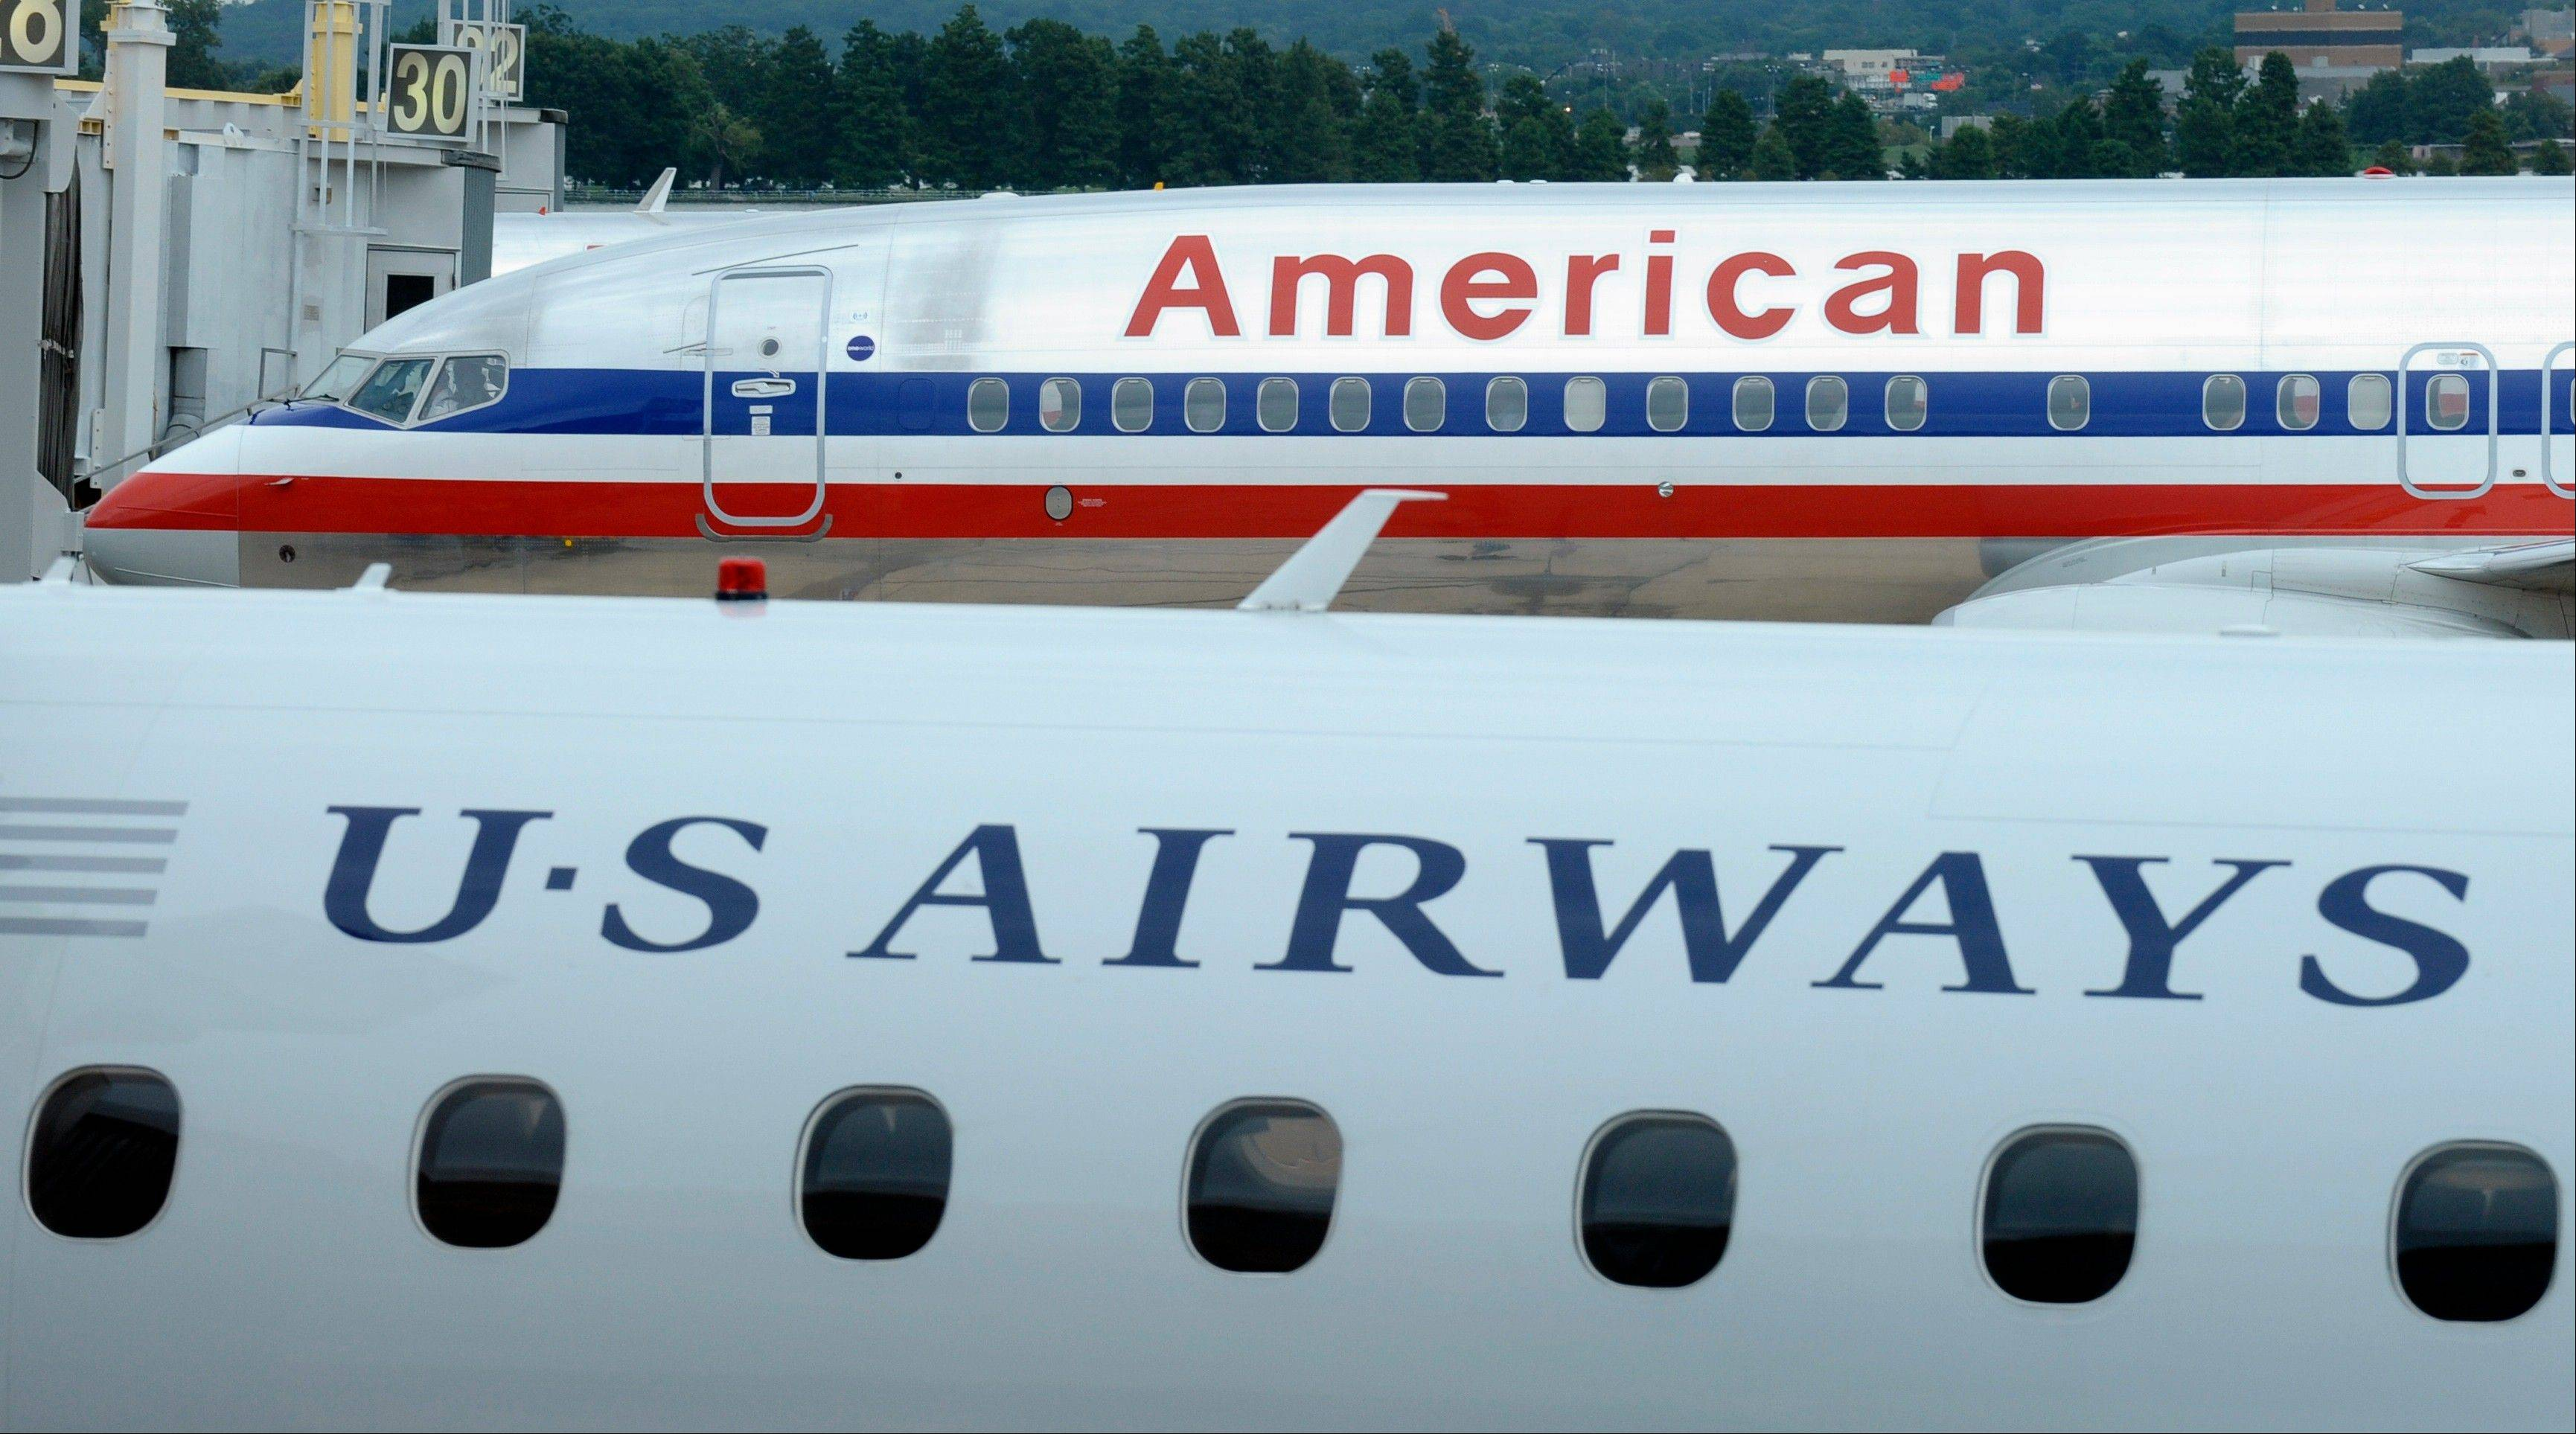 The Justice Department says it has reached an agreement to allow the merger of the two airlines. The agreement requires them to scale back the size of the merger at key airports in Washington and other big cities.